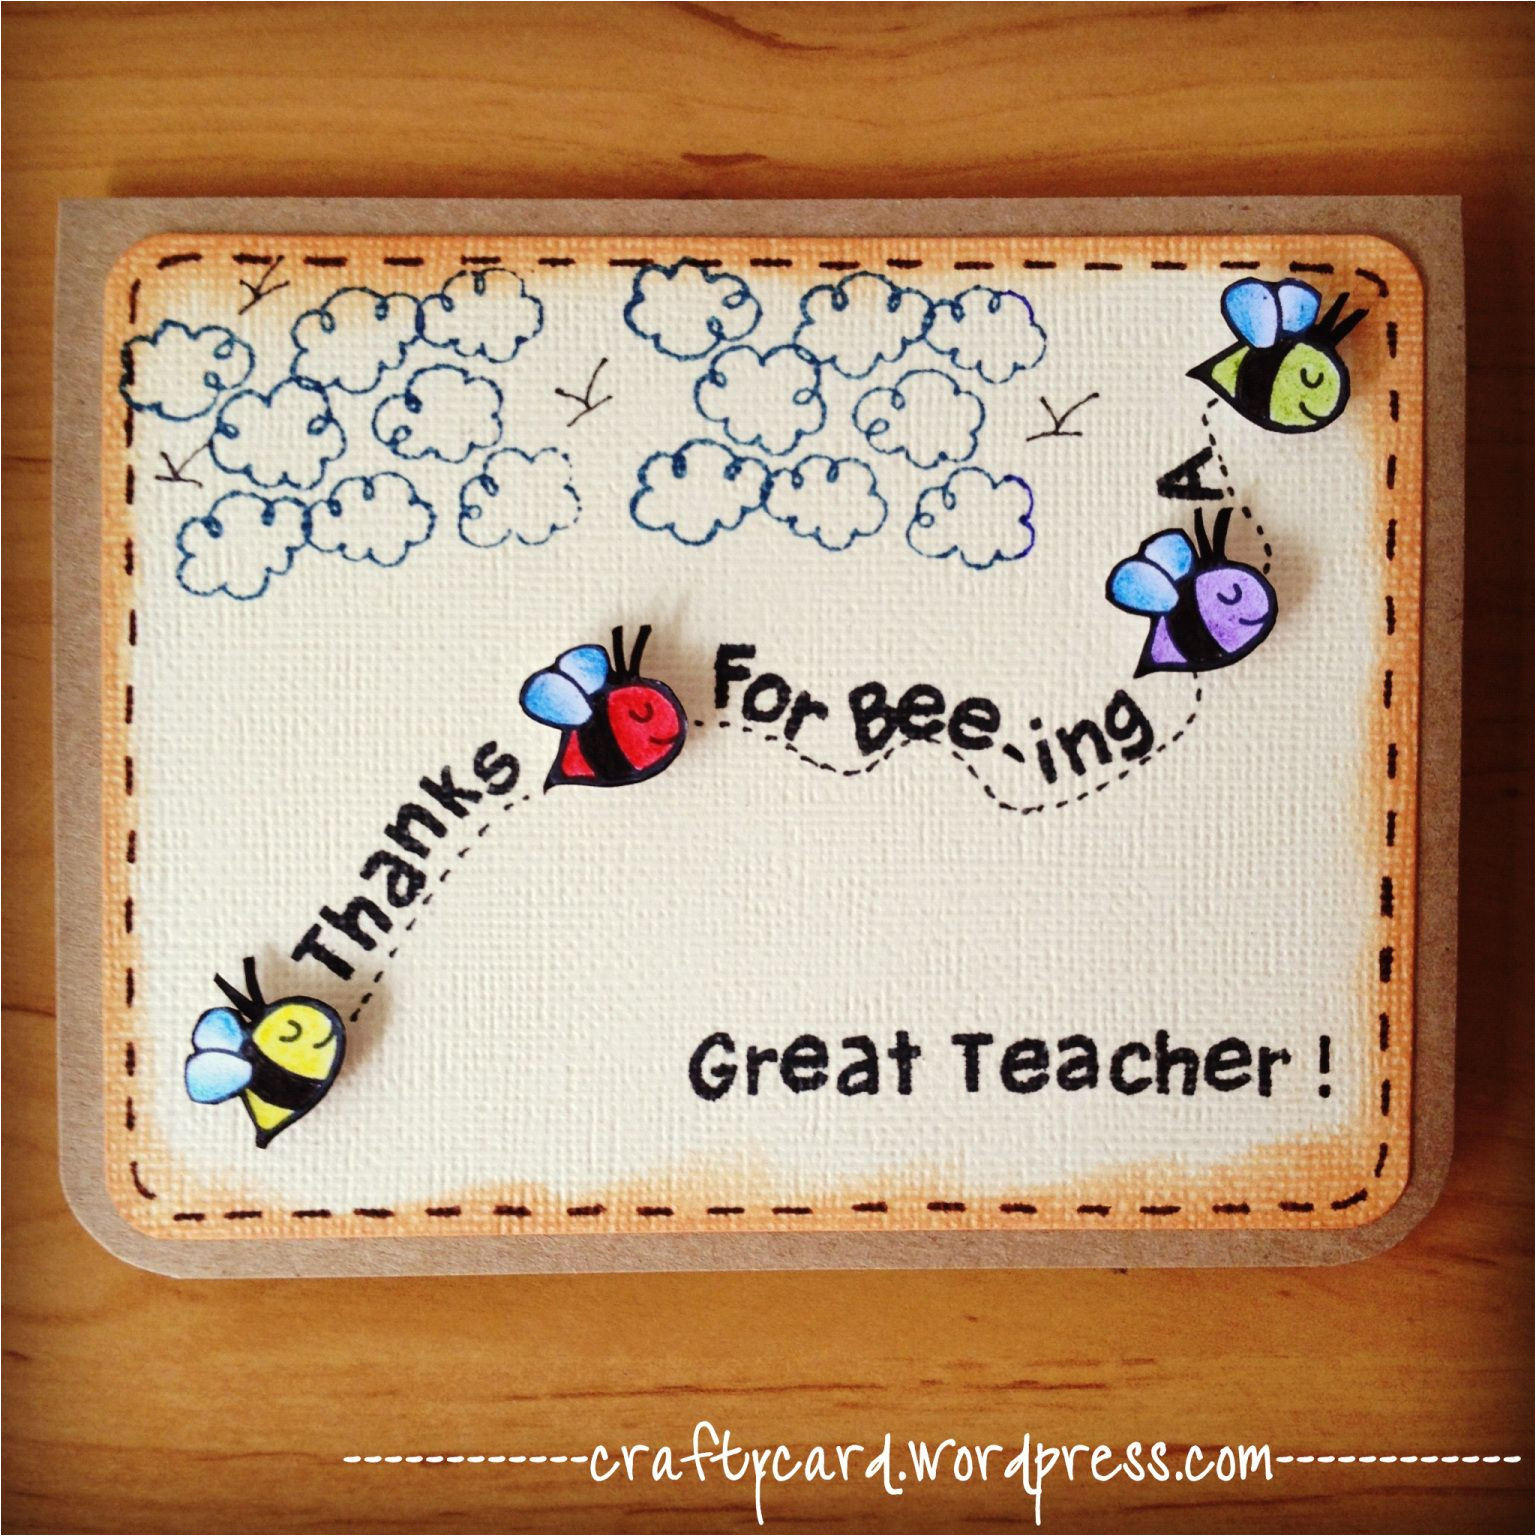 Teachers Day Card for Ukg Students M203 Thanks for Bee Ing A Great Teacher with Images